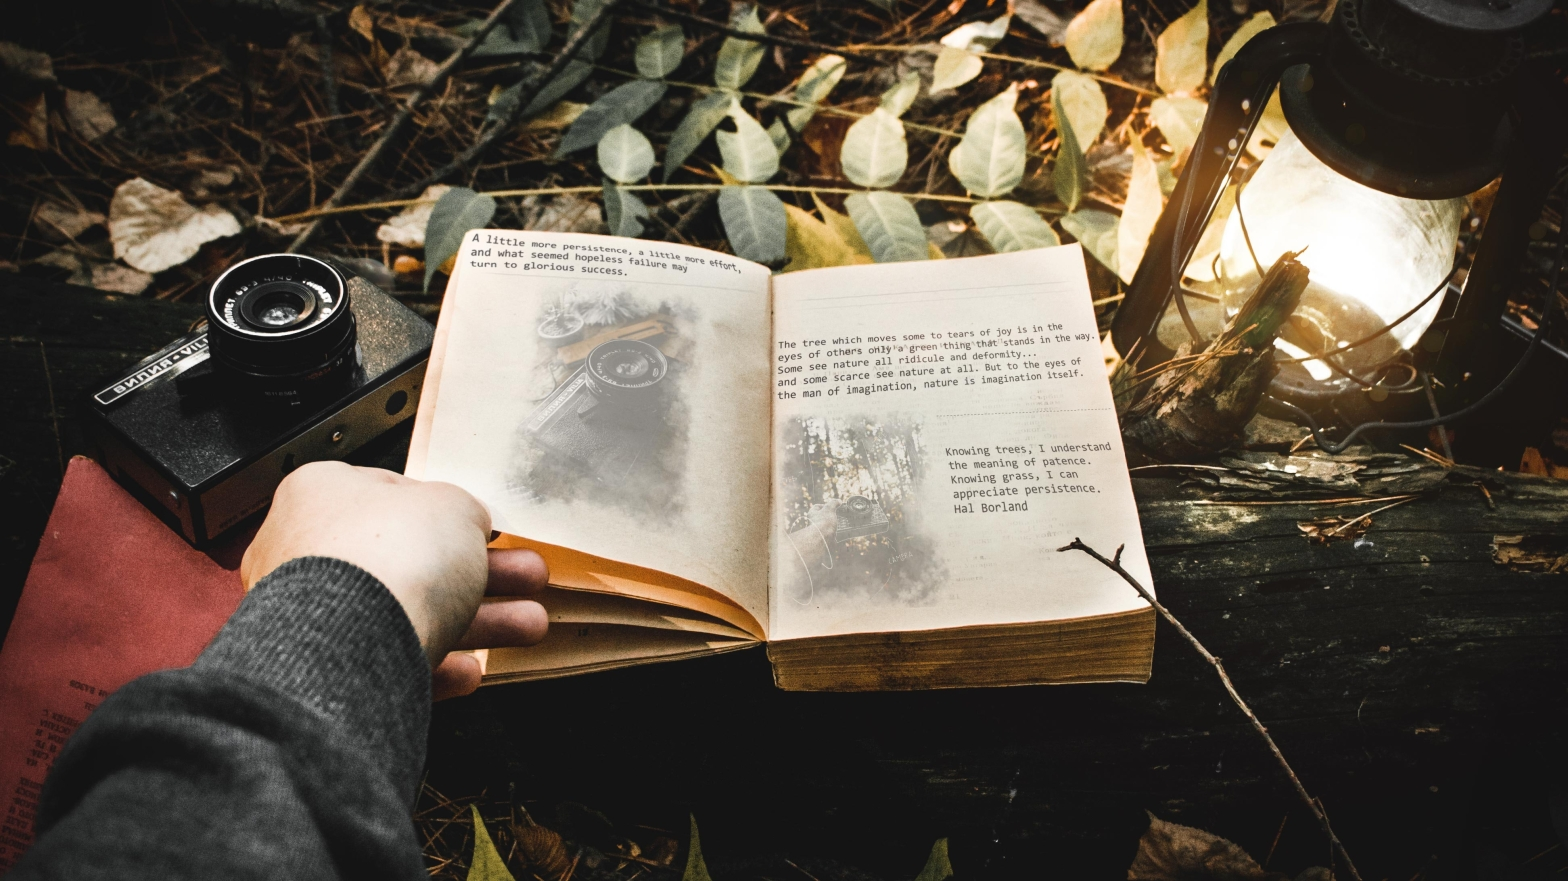 Hand leafing through open book in a dark setting on a bed of leaves, with a camera and lantern on either side of the book